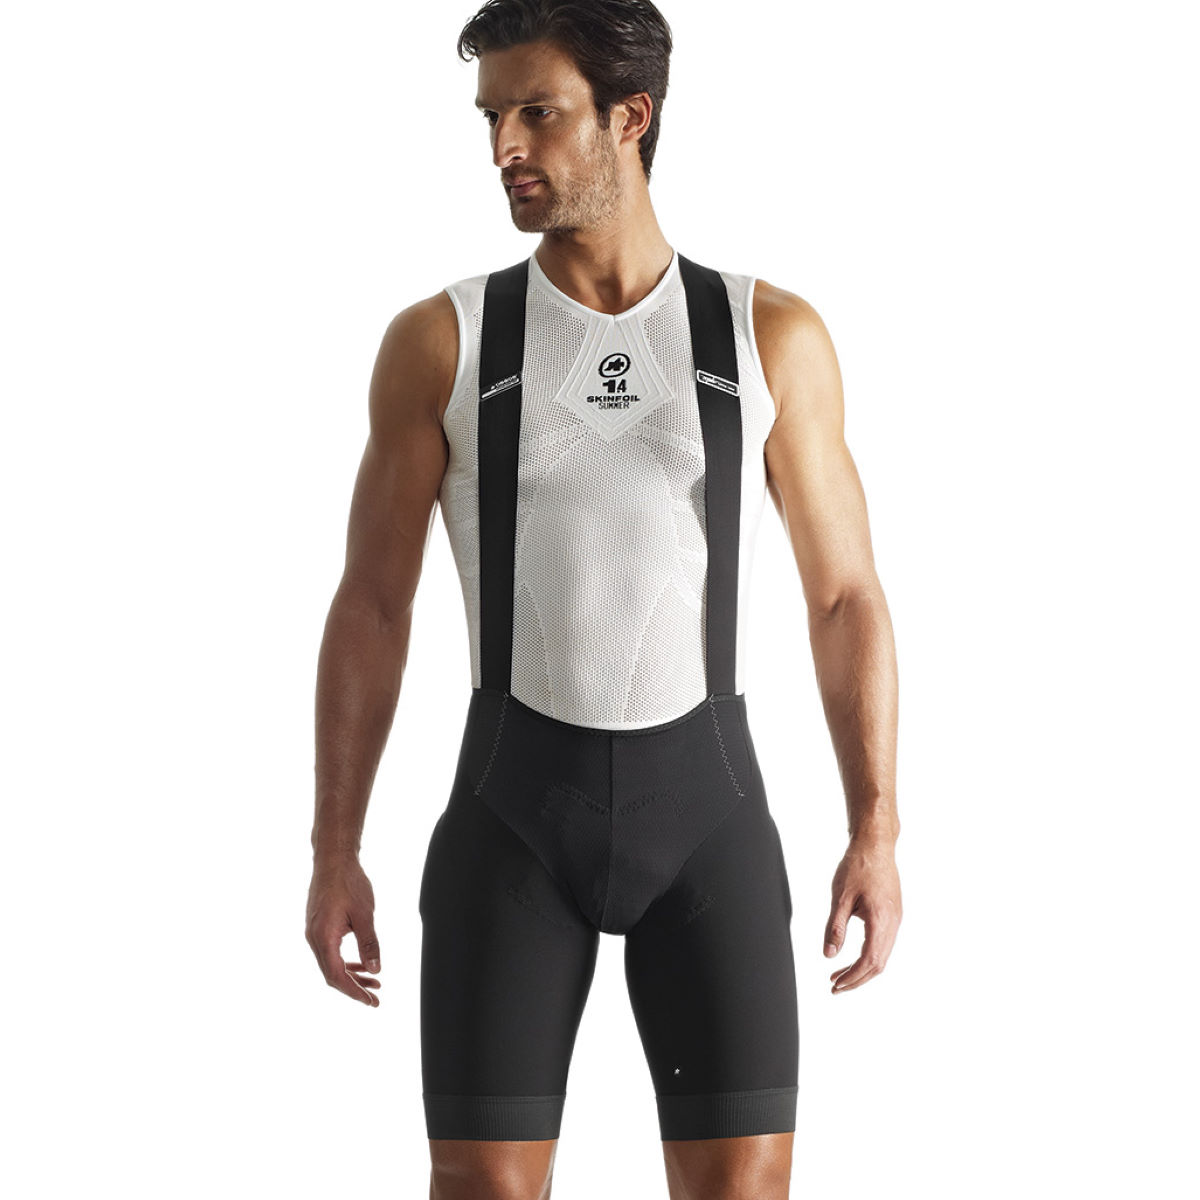 Assos T.rally_s7 MTB Bib Shorts   Lycra Cycling Shorts